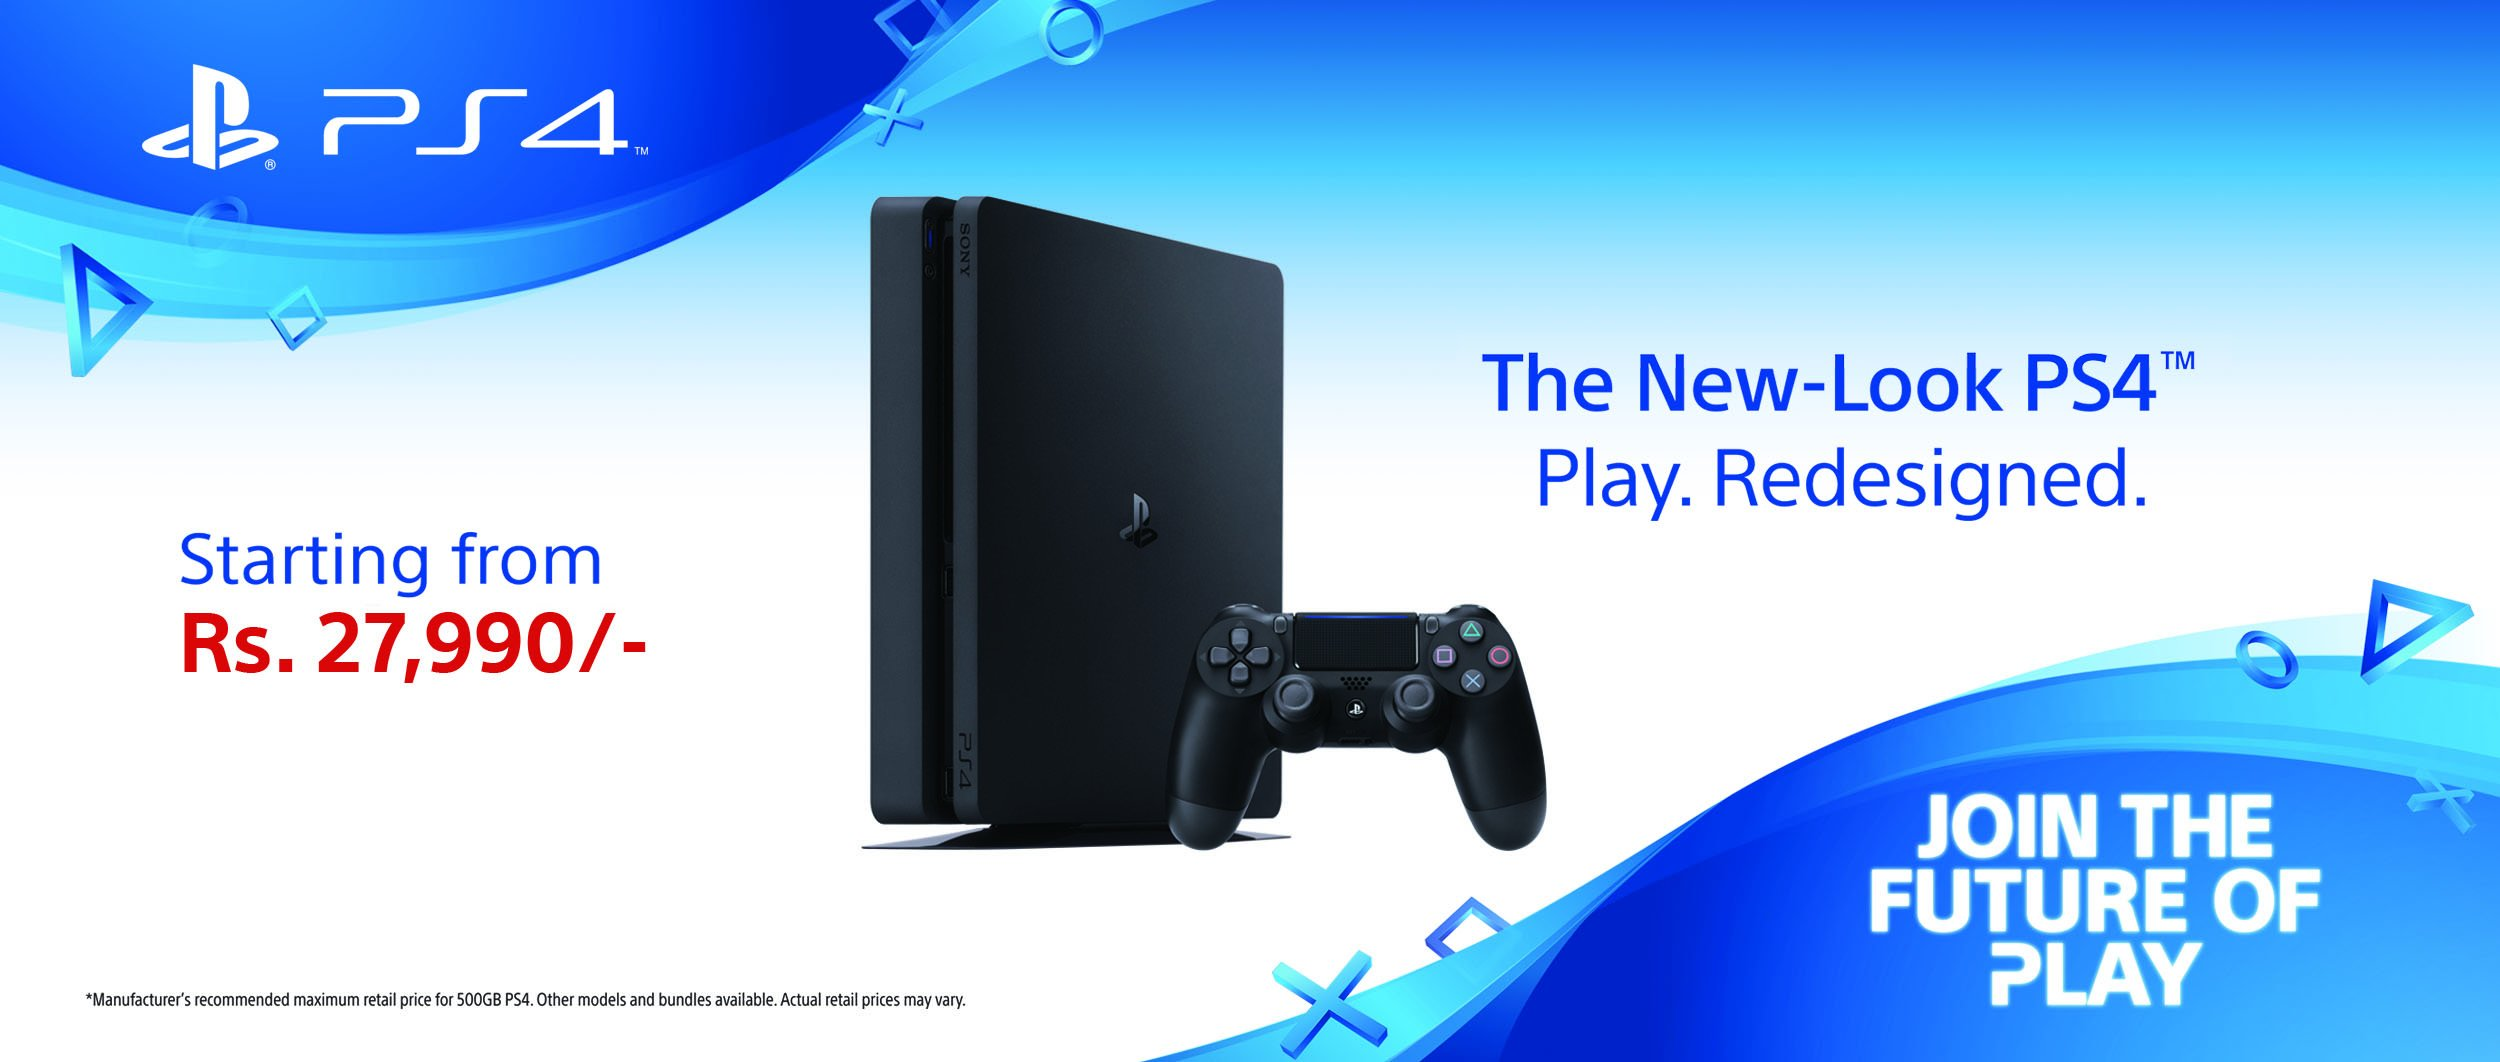 video game consoles buy consoles for ps2 ps3 ps4 sony. Black Bedroom Furniture Sets. Home Design Ideas